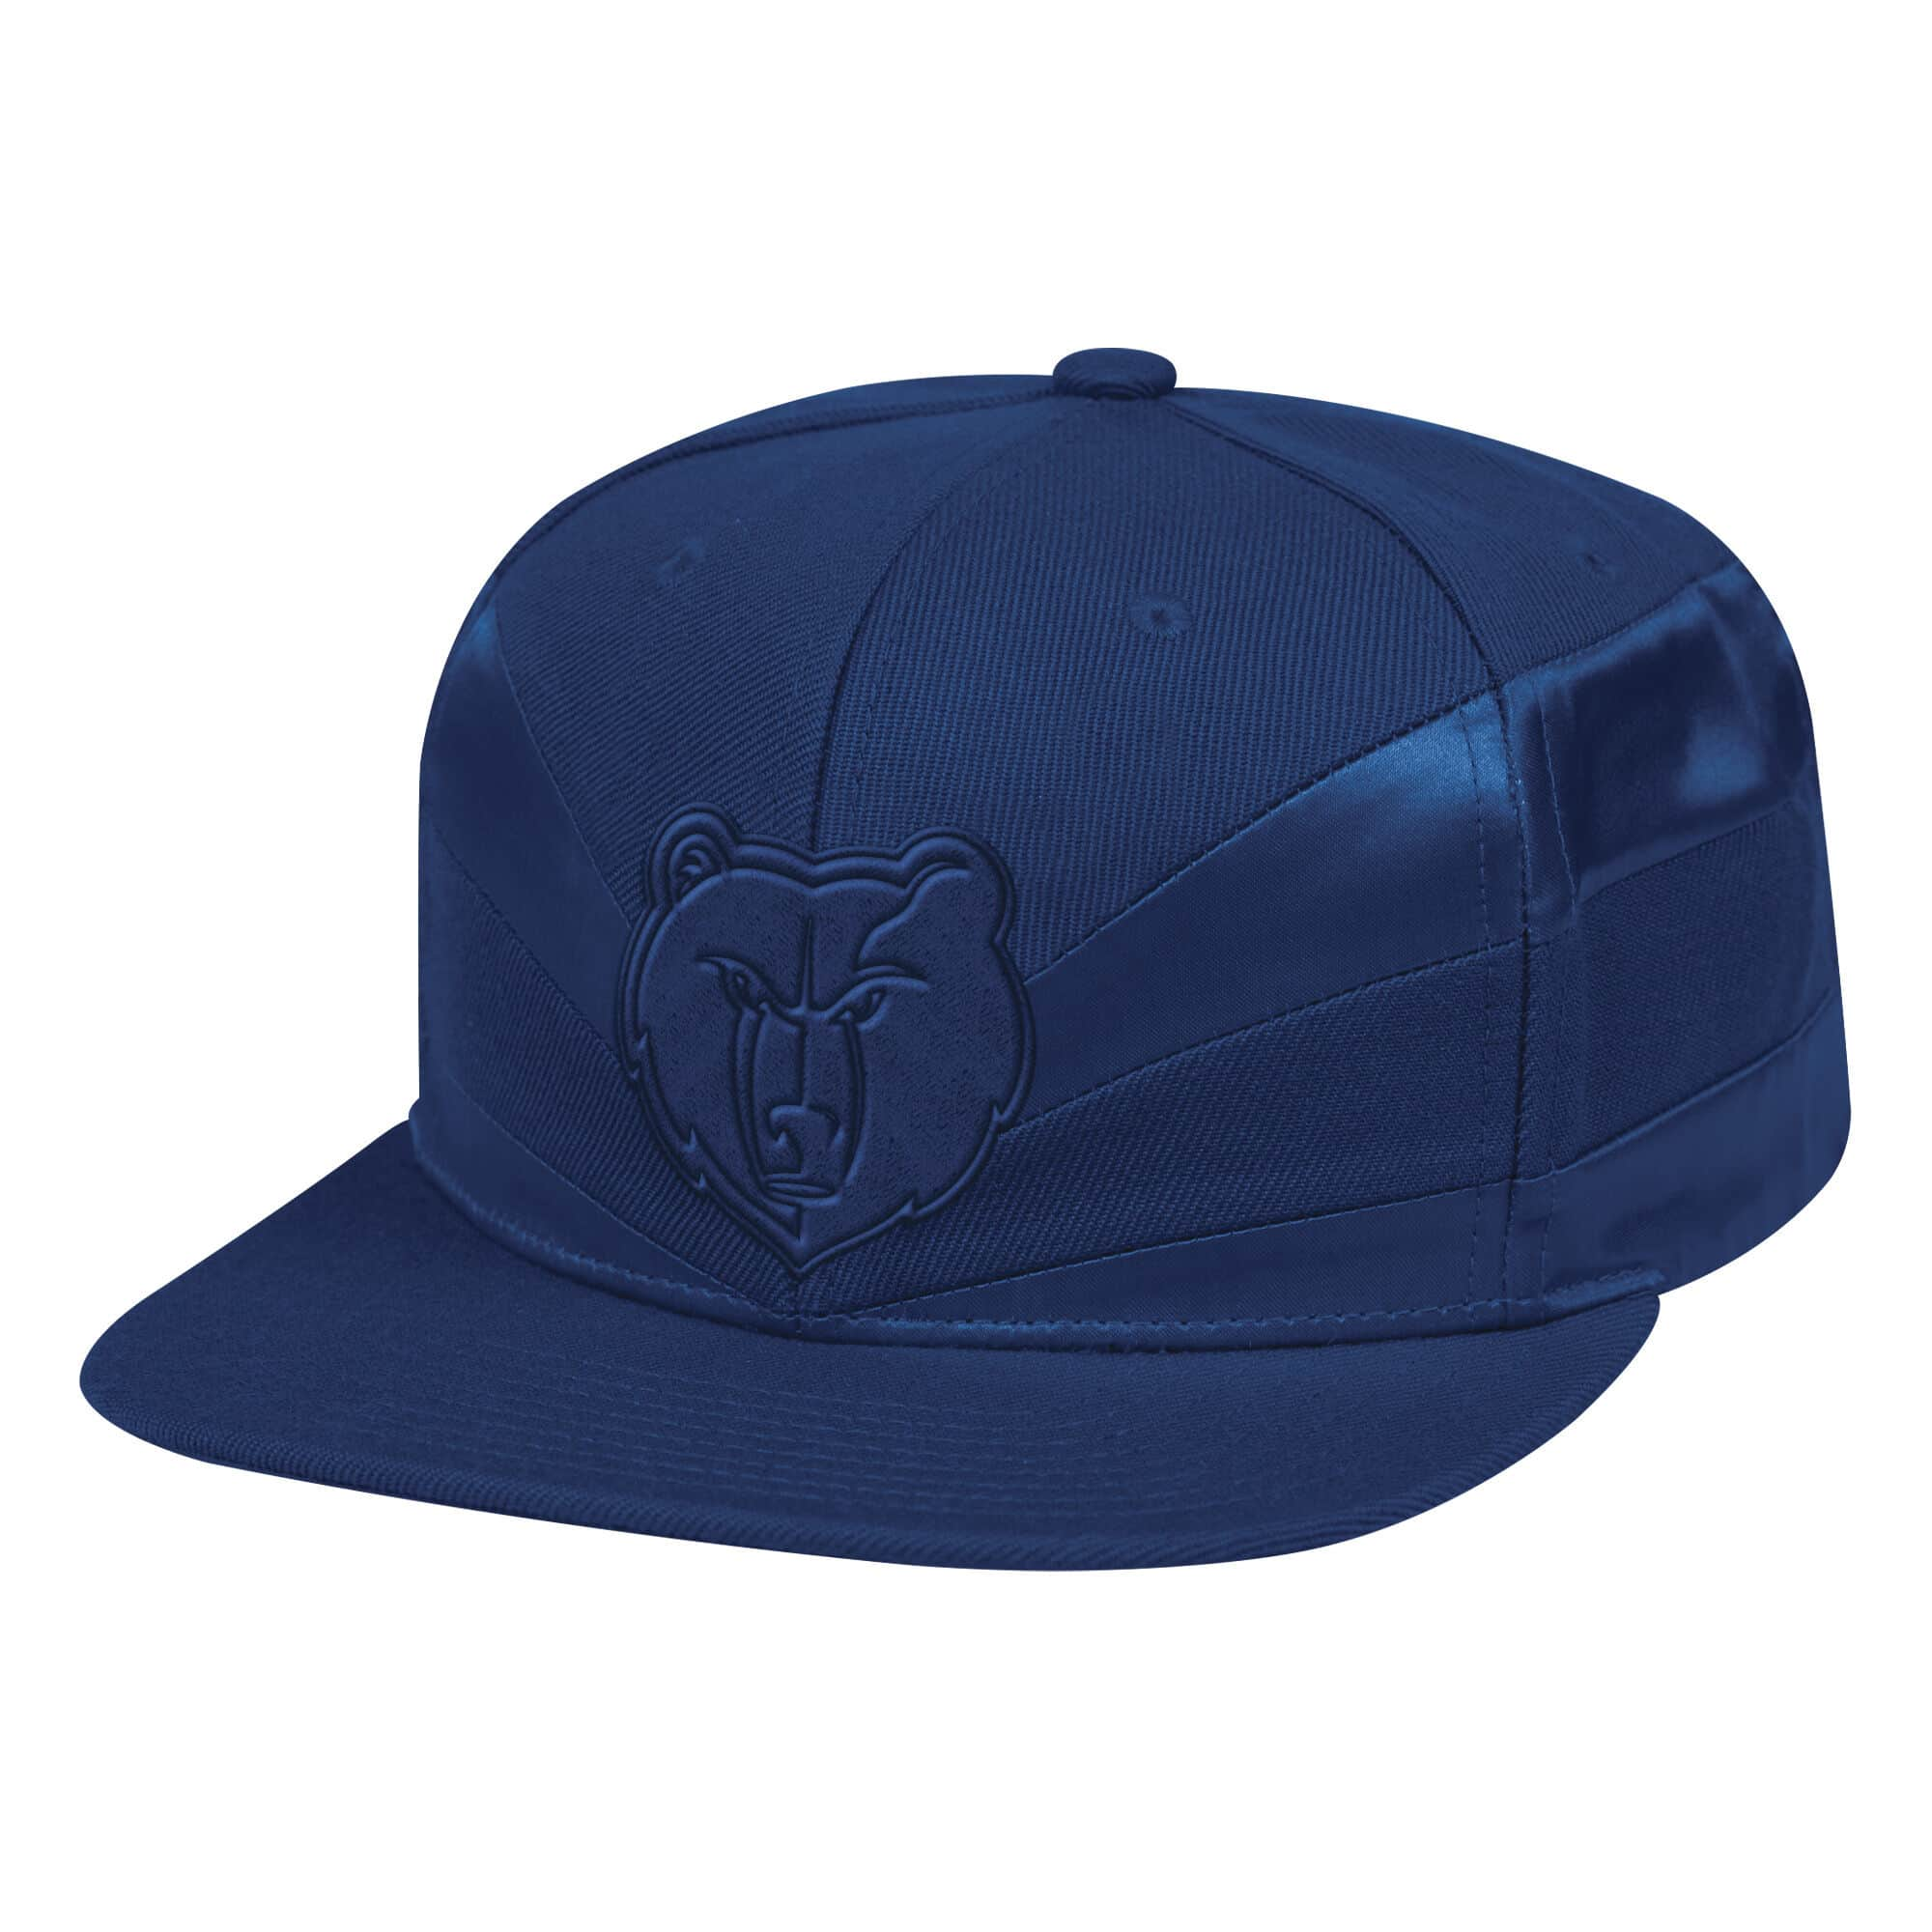 Satin Slash Snapback Memphis Grizzlies